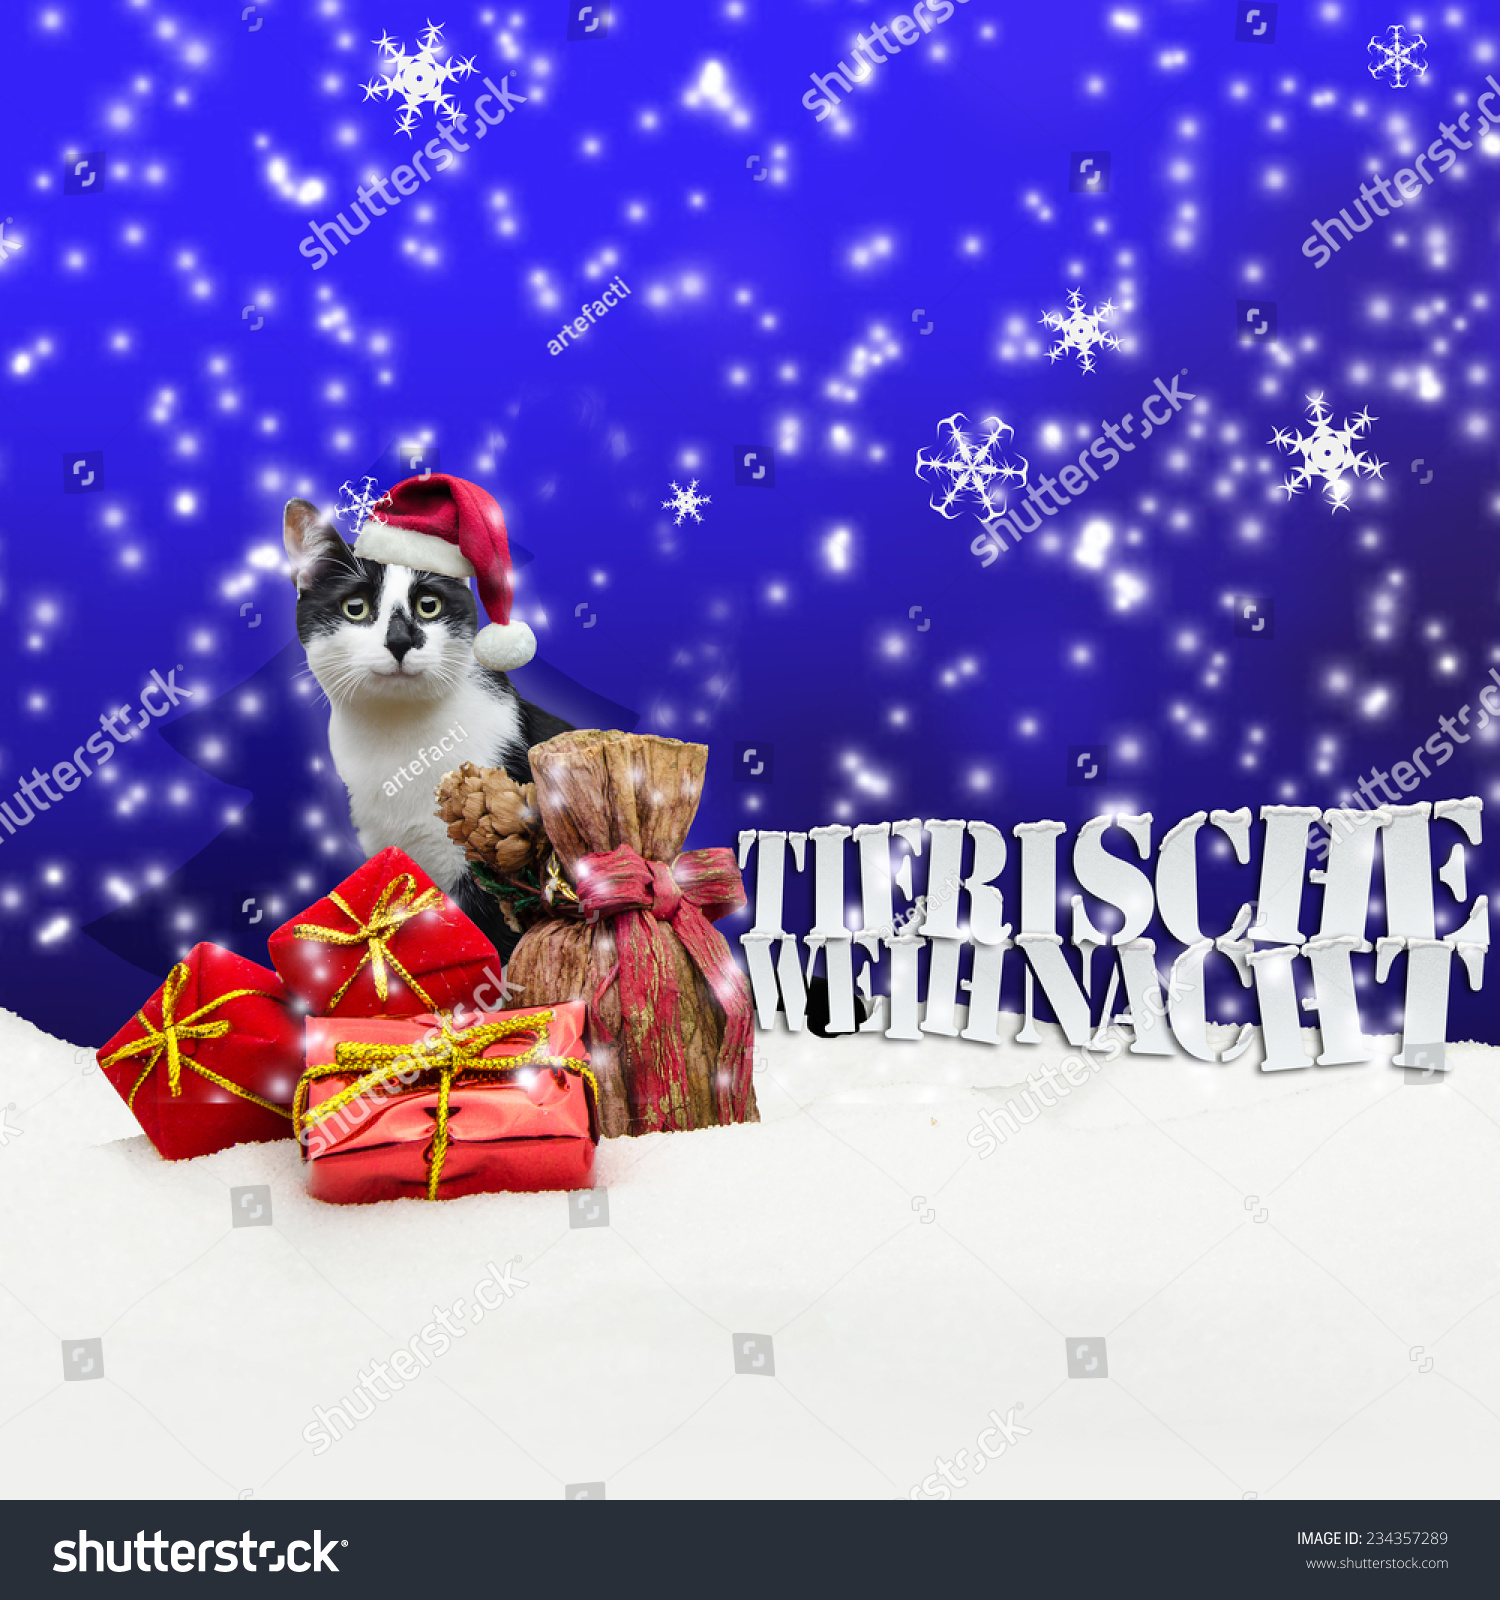 tierische weihnacht cat christmas snow pet stock photo. Black Bedroom Furniture Sets. Home Design Ideas